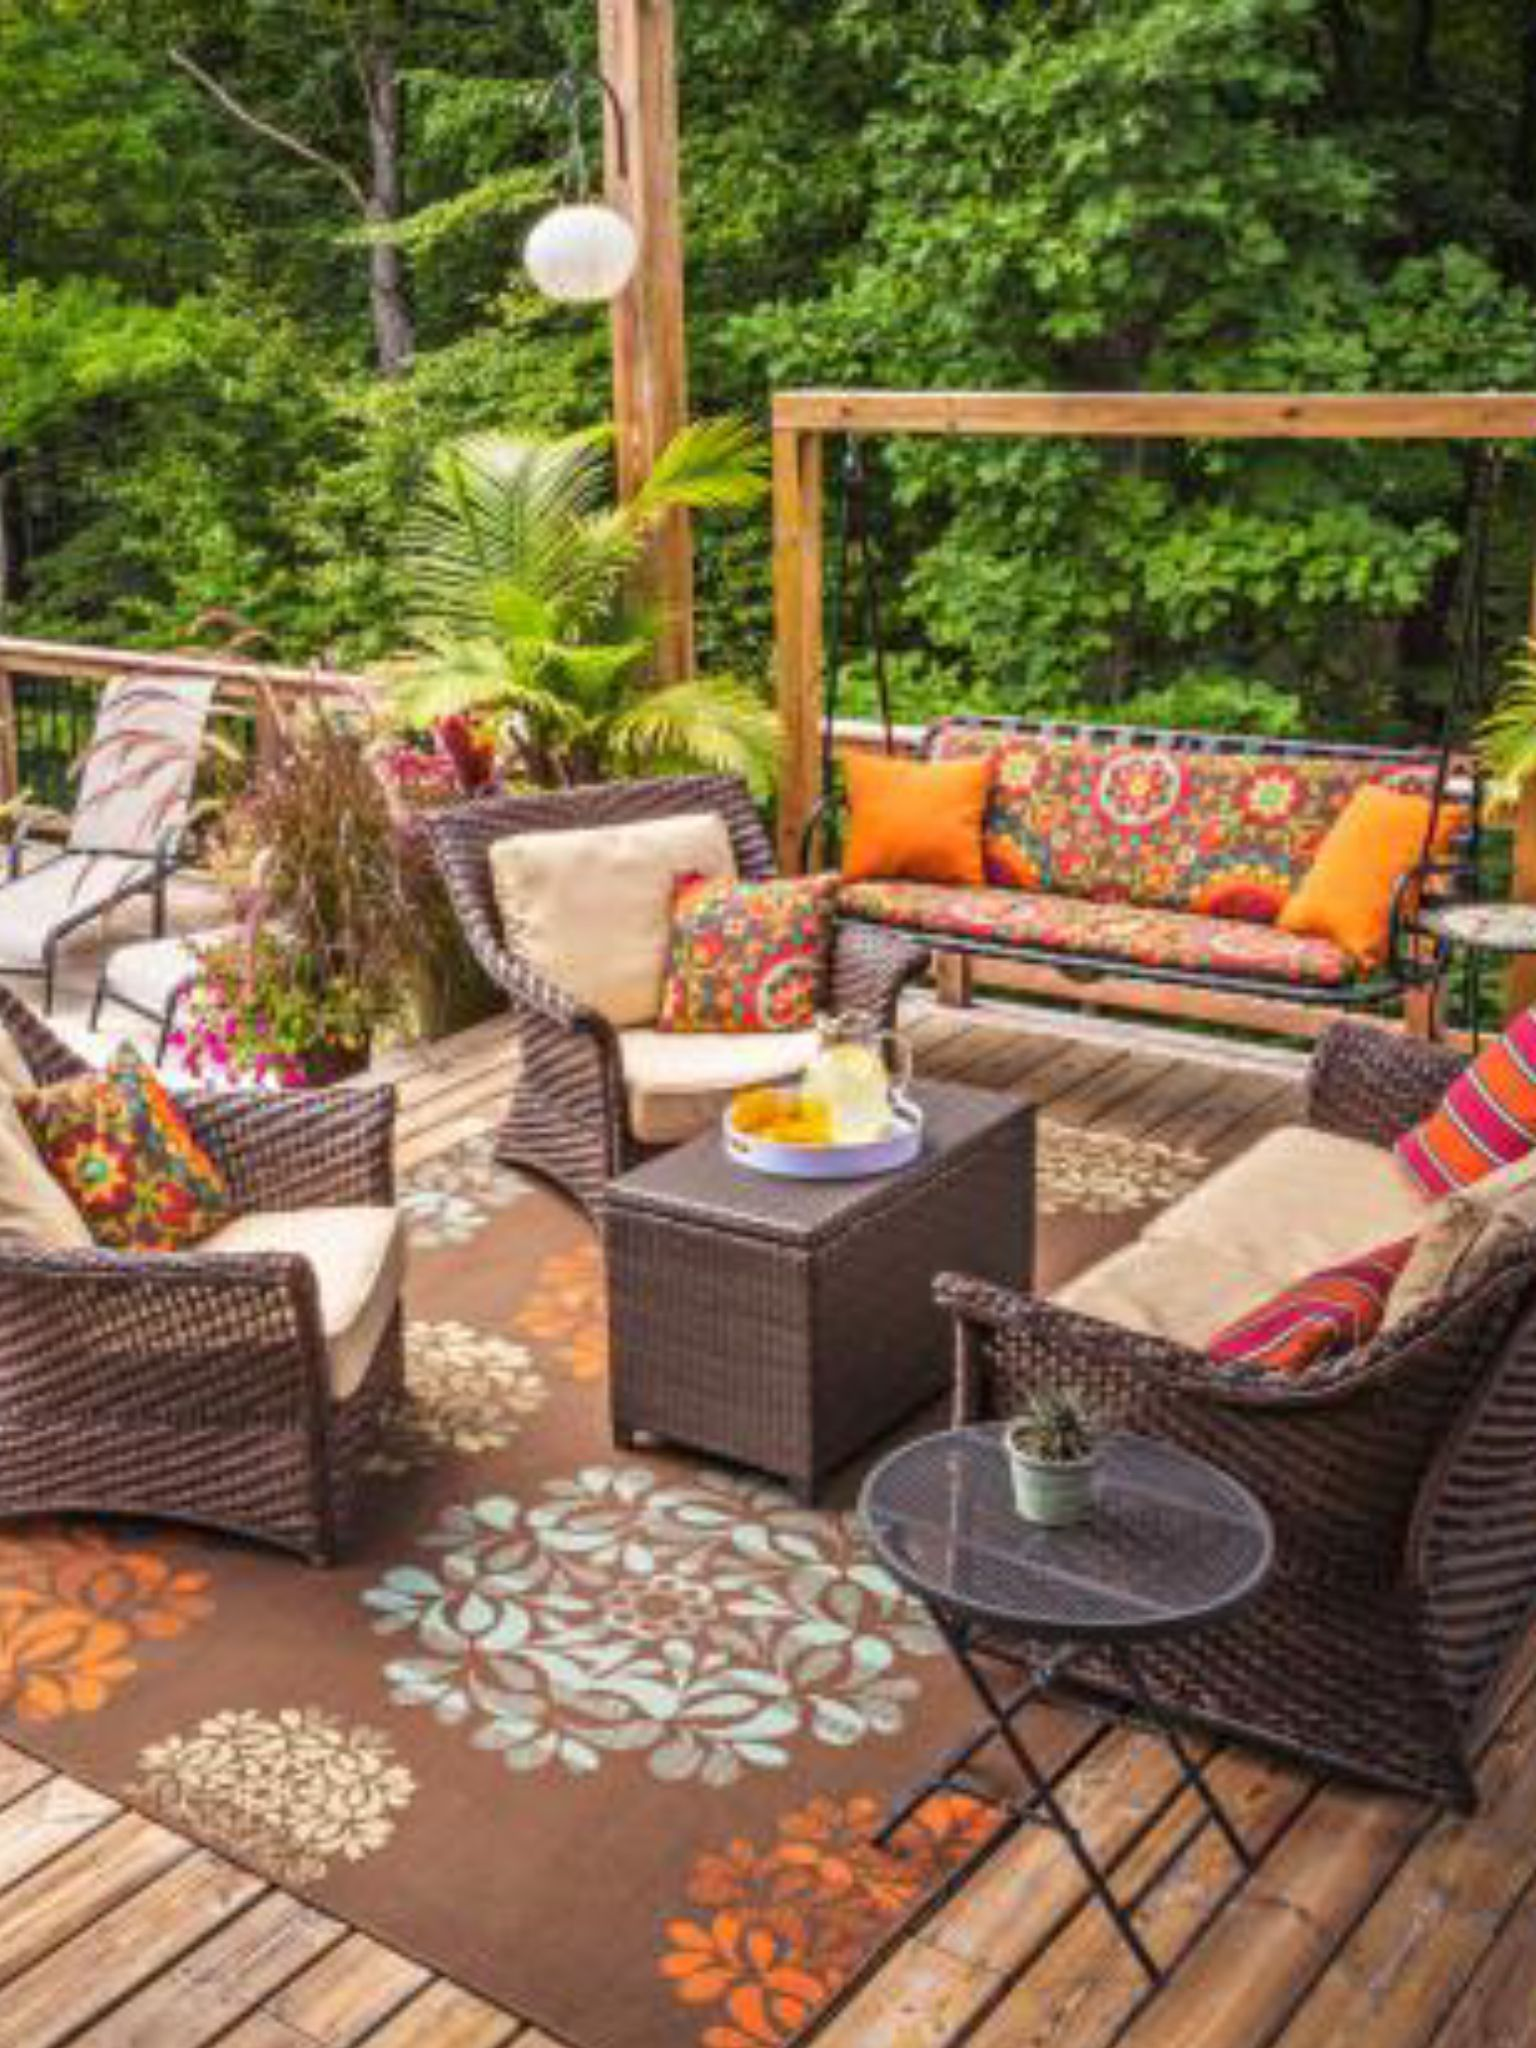 Deck Furniture Ideas Perfect Outdoor Chill Spot Home Is Where The Heart Is